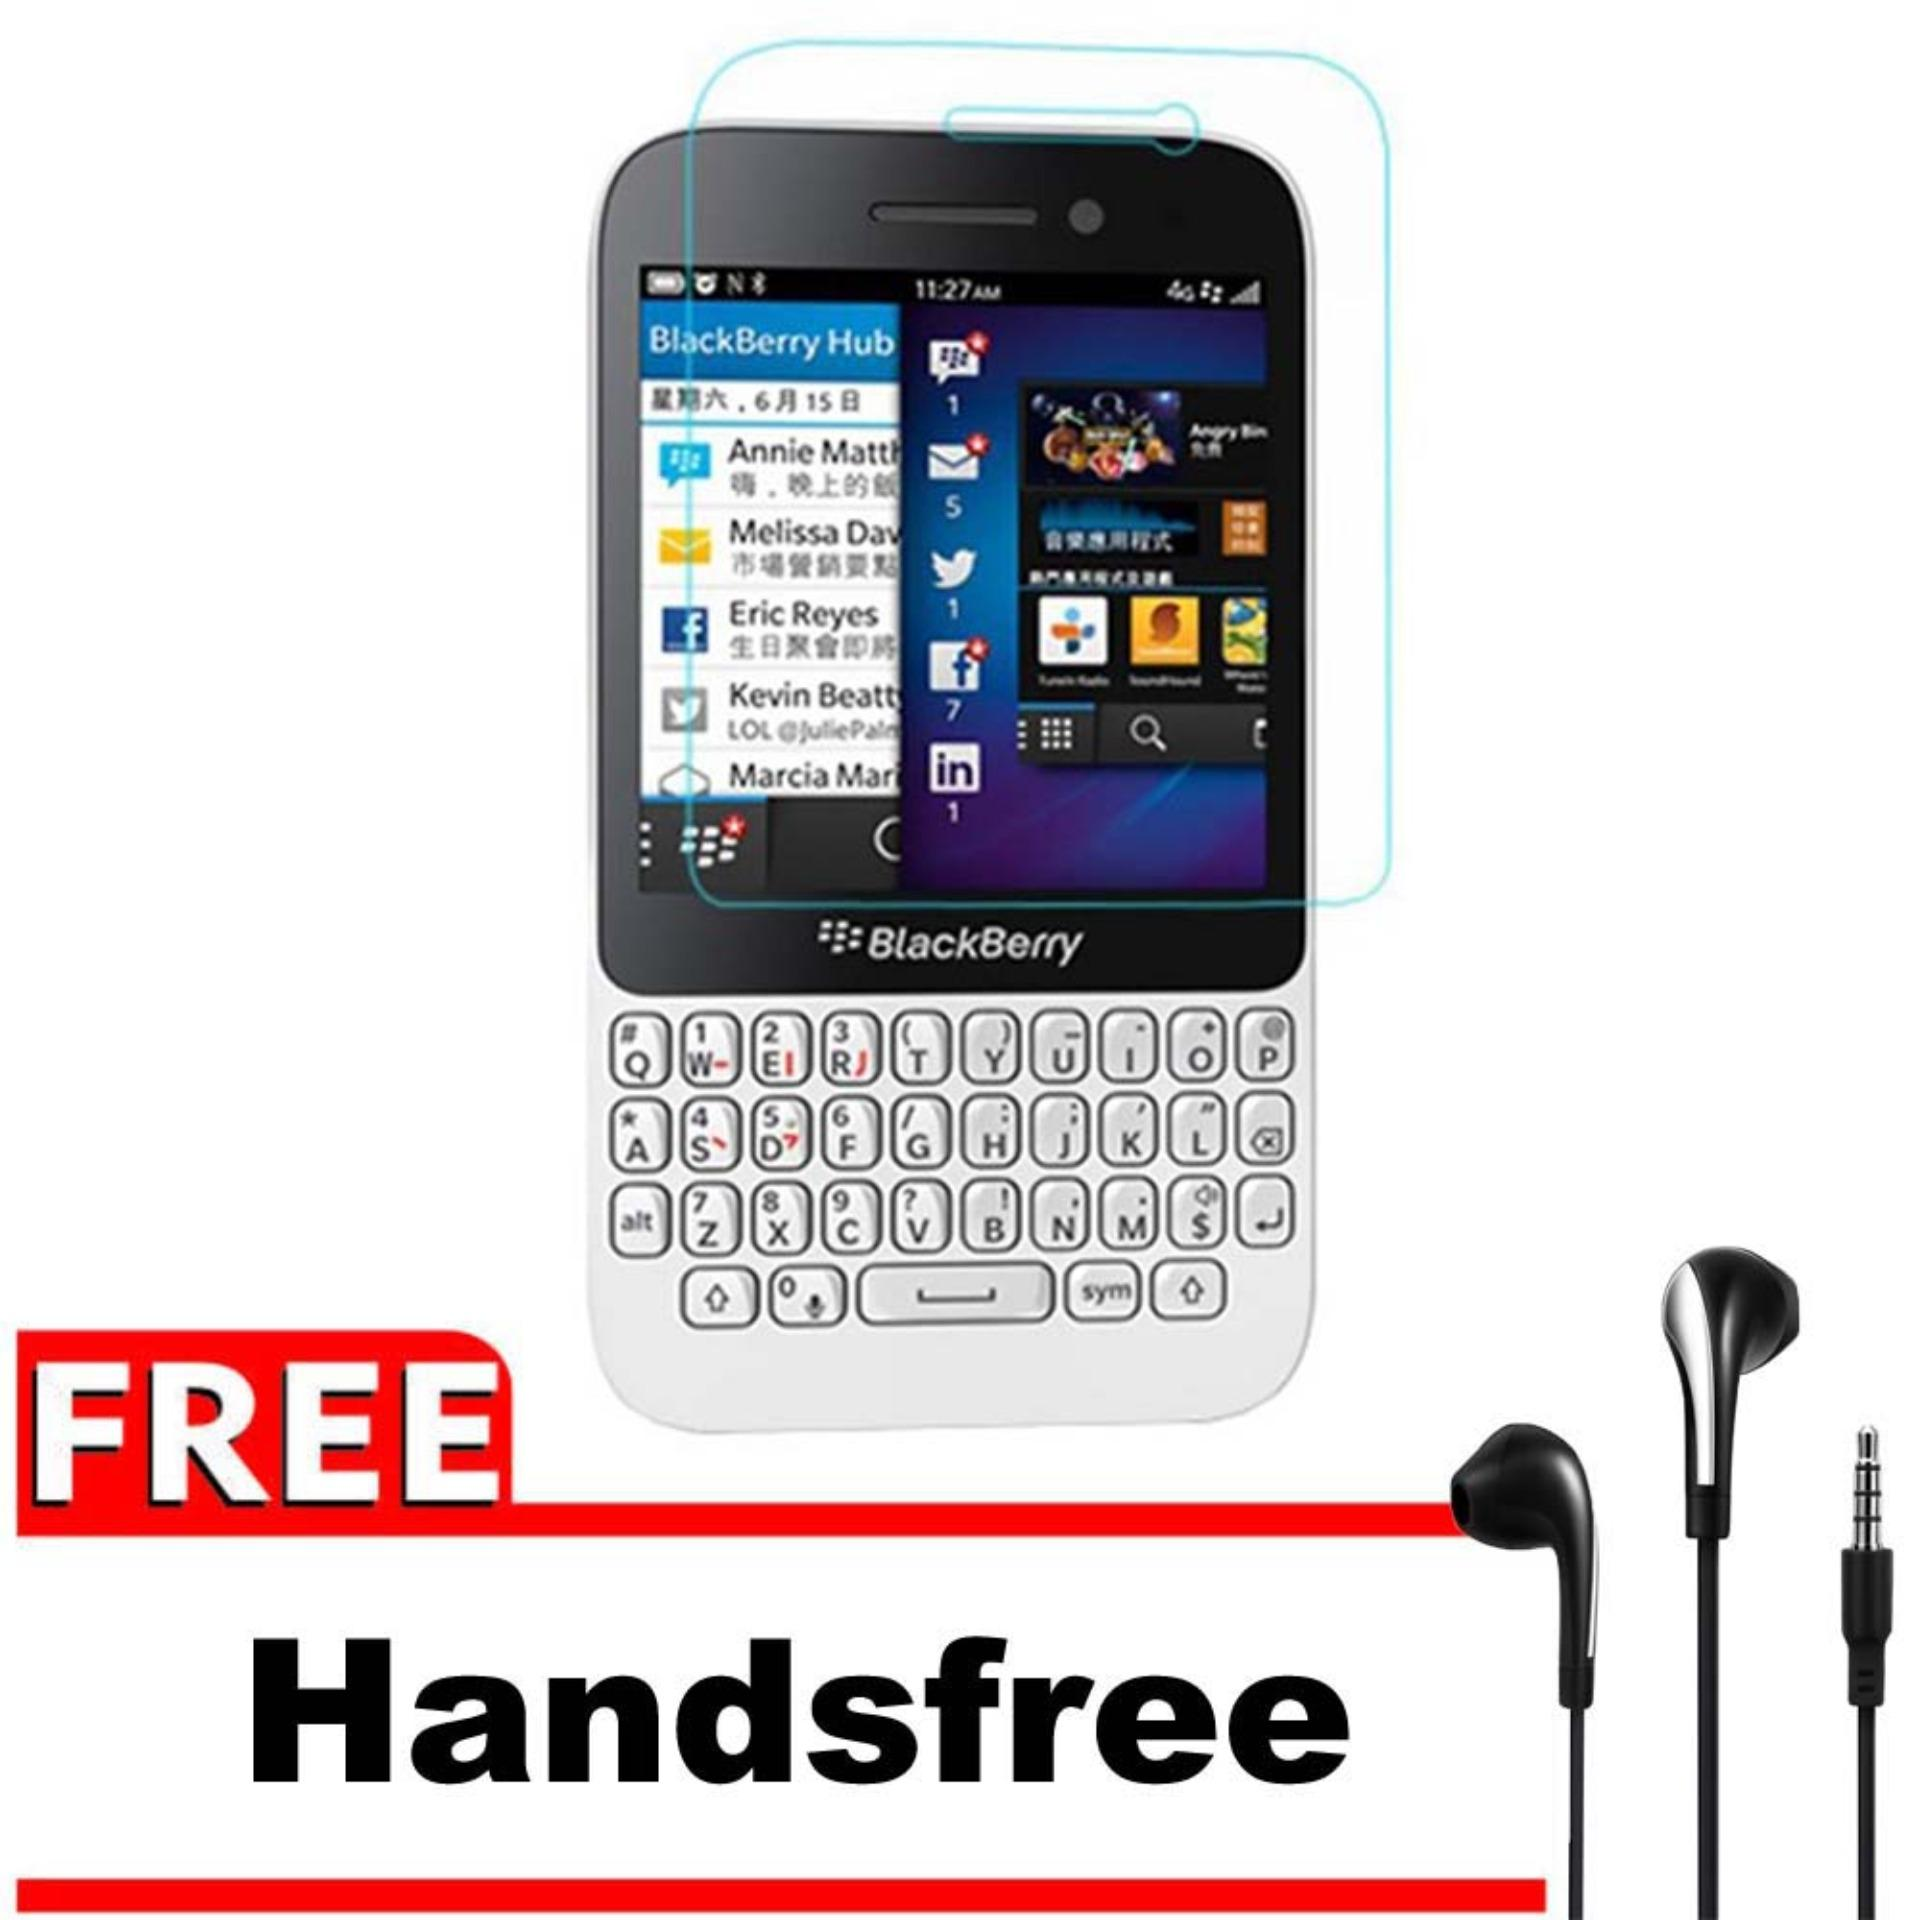 Vn Blackberry BB Q5 Tempered Glass 9H Screen Protector 0.32mm + Gratis Free Handsfree Earphone Headset Universal - Bening Transparan